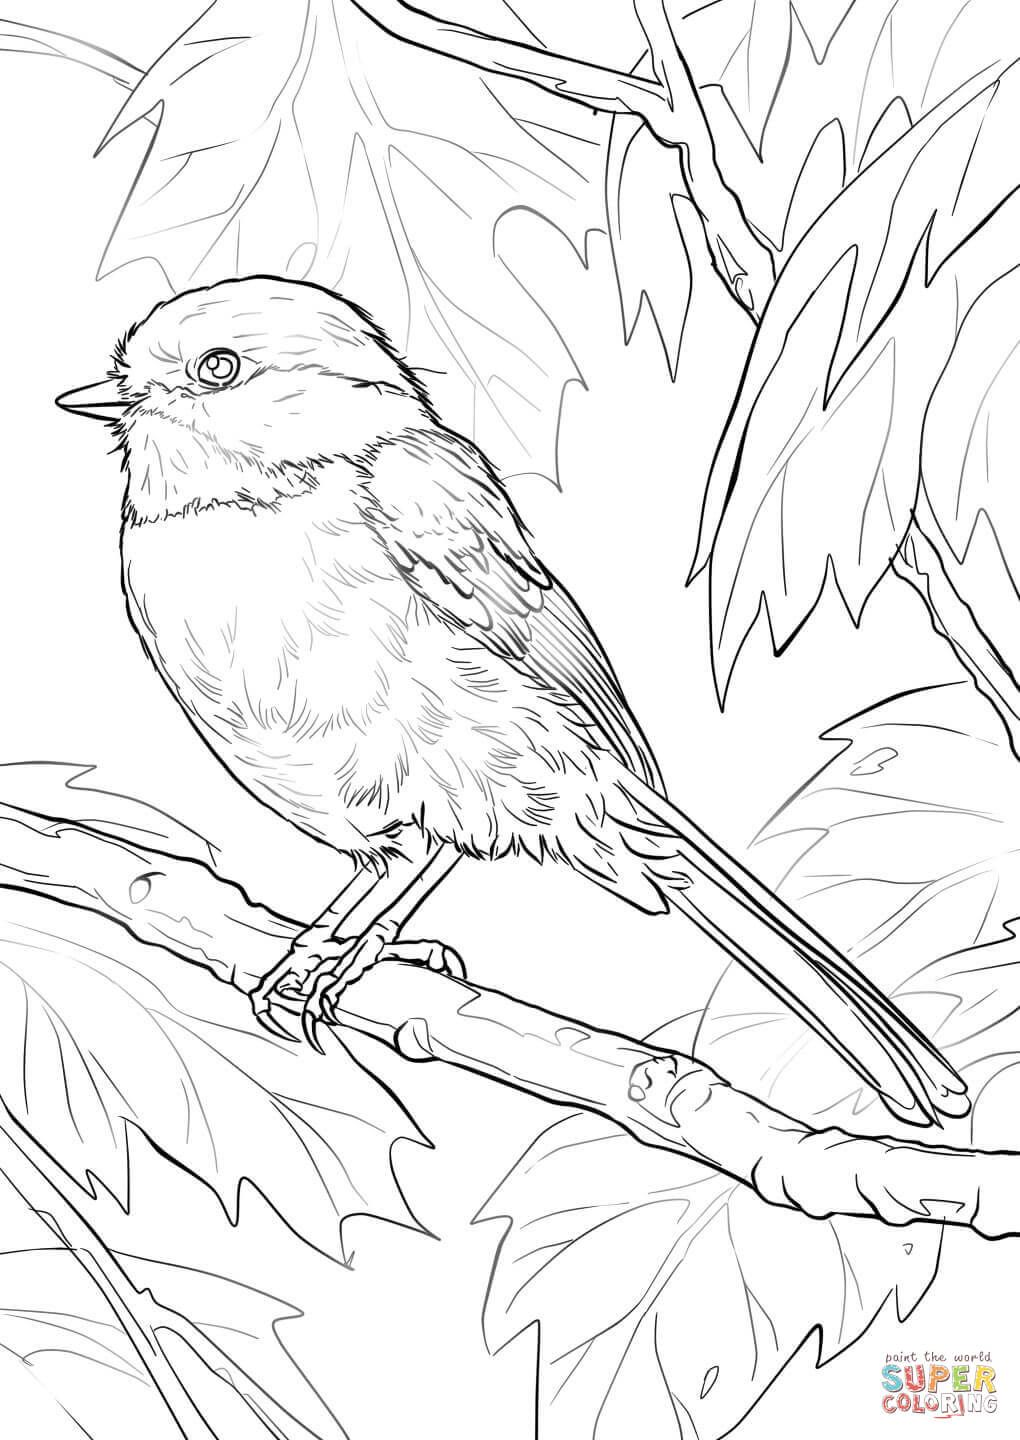 Black Capped Chickadee Coloring Page Free Printable Coloring Pages Bird Coloring Pages Coloring Pages Free Coloring Pages